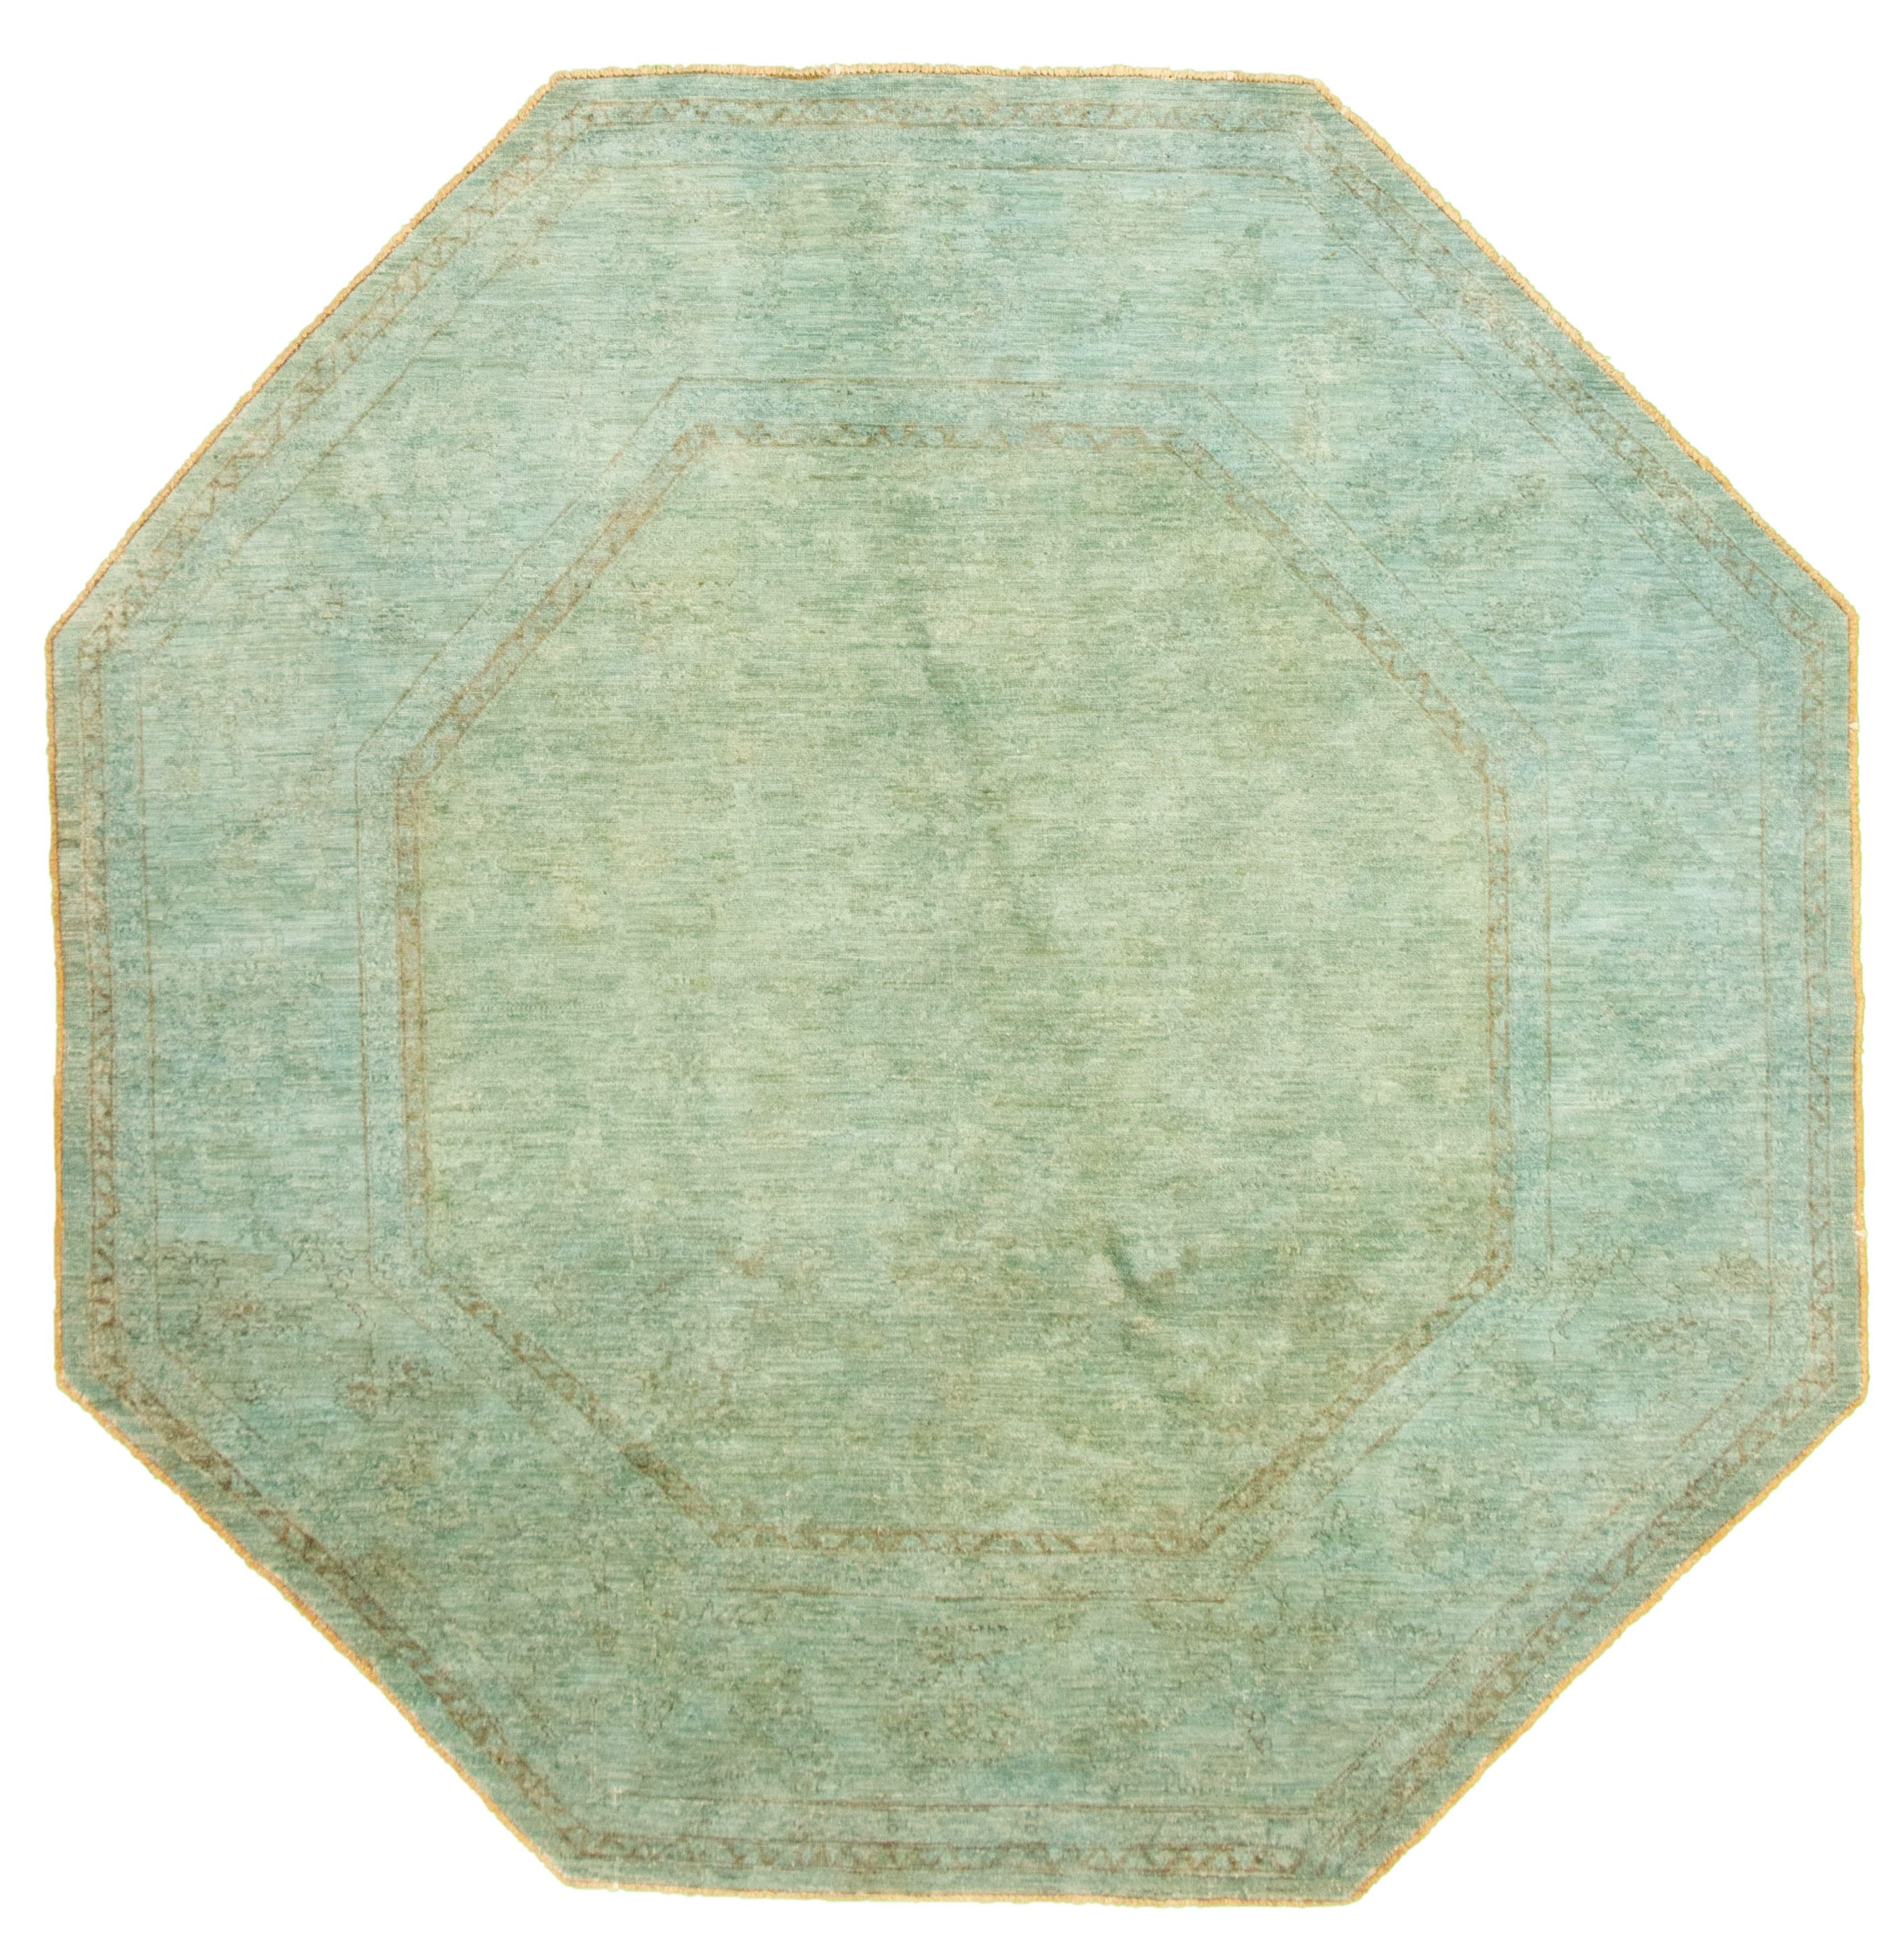 """Hand-knotted Color Transition Light Blue  Wool Rug 7'9"""" x 7'9"""" Size: 7'9"""" x 7'9"""""""